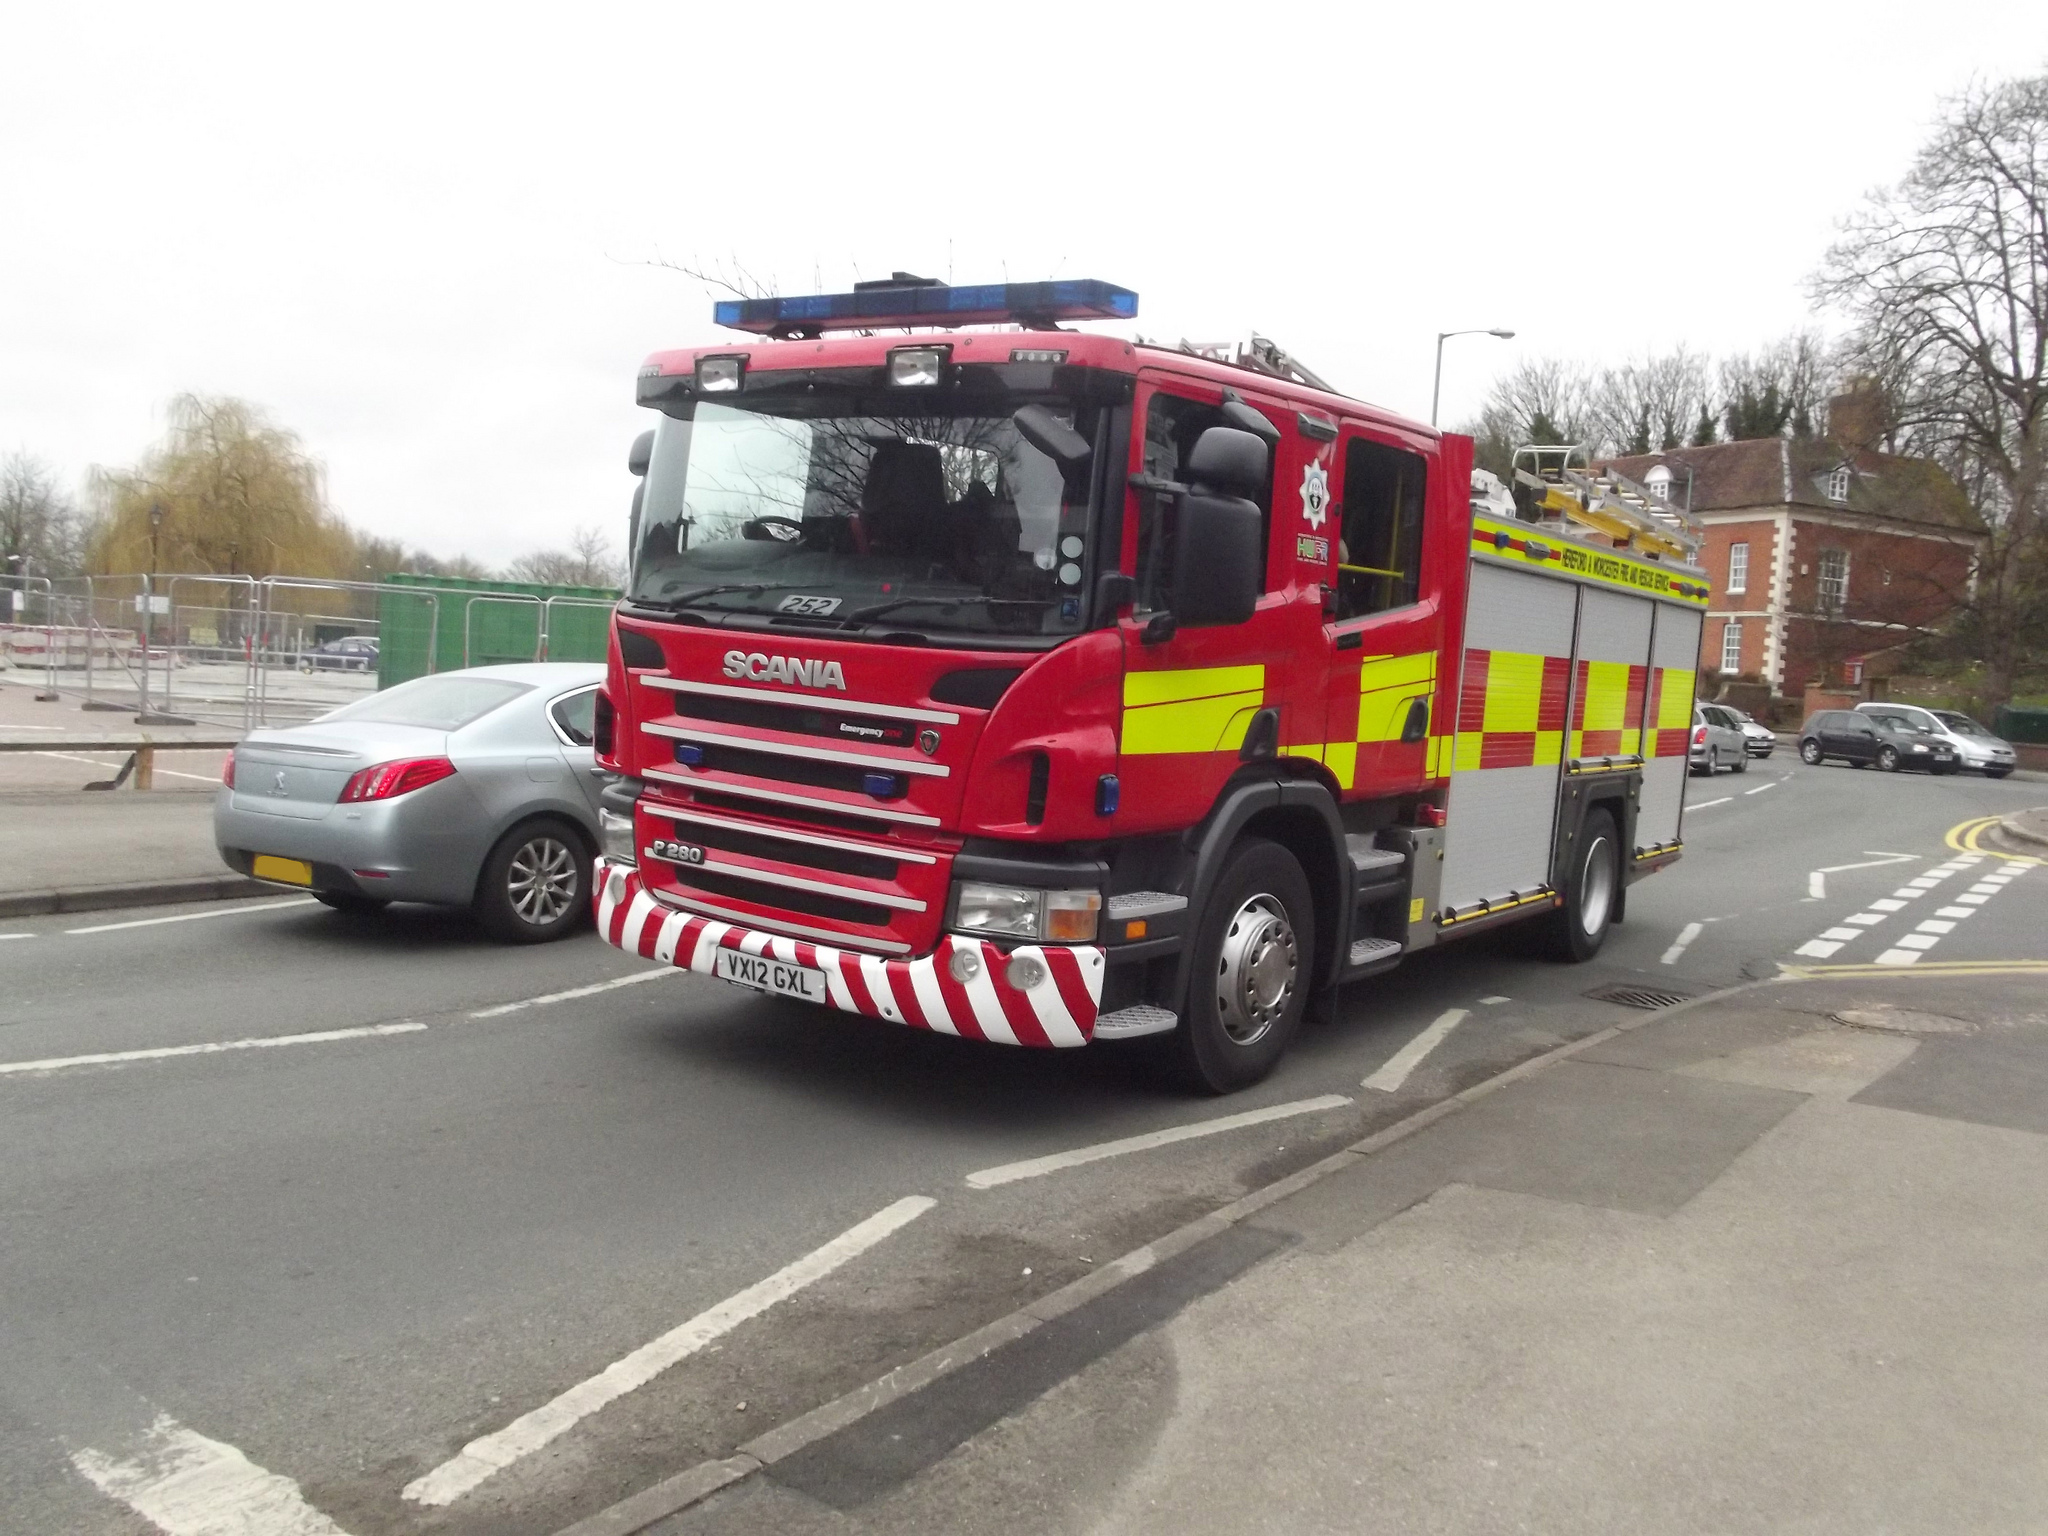 the fire engine - photo #25